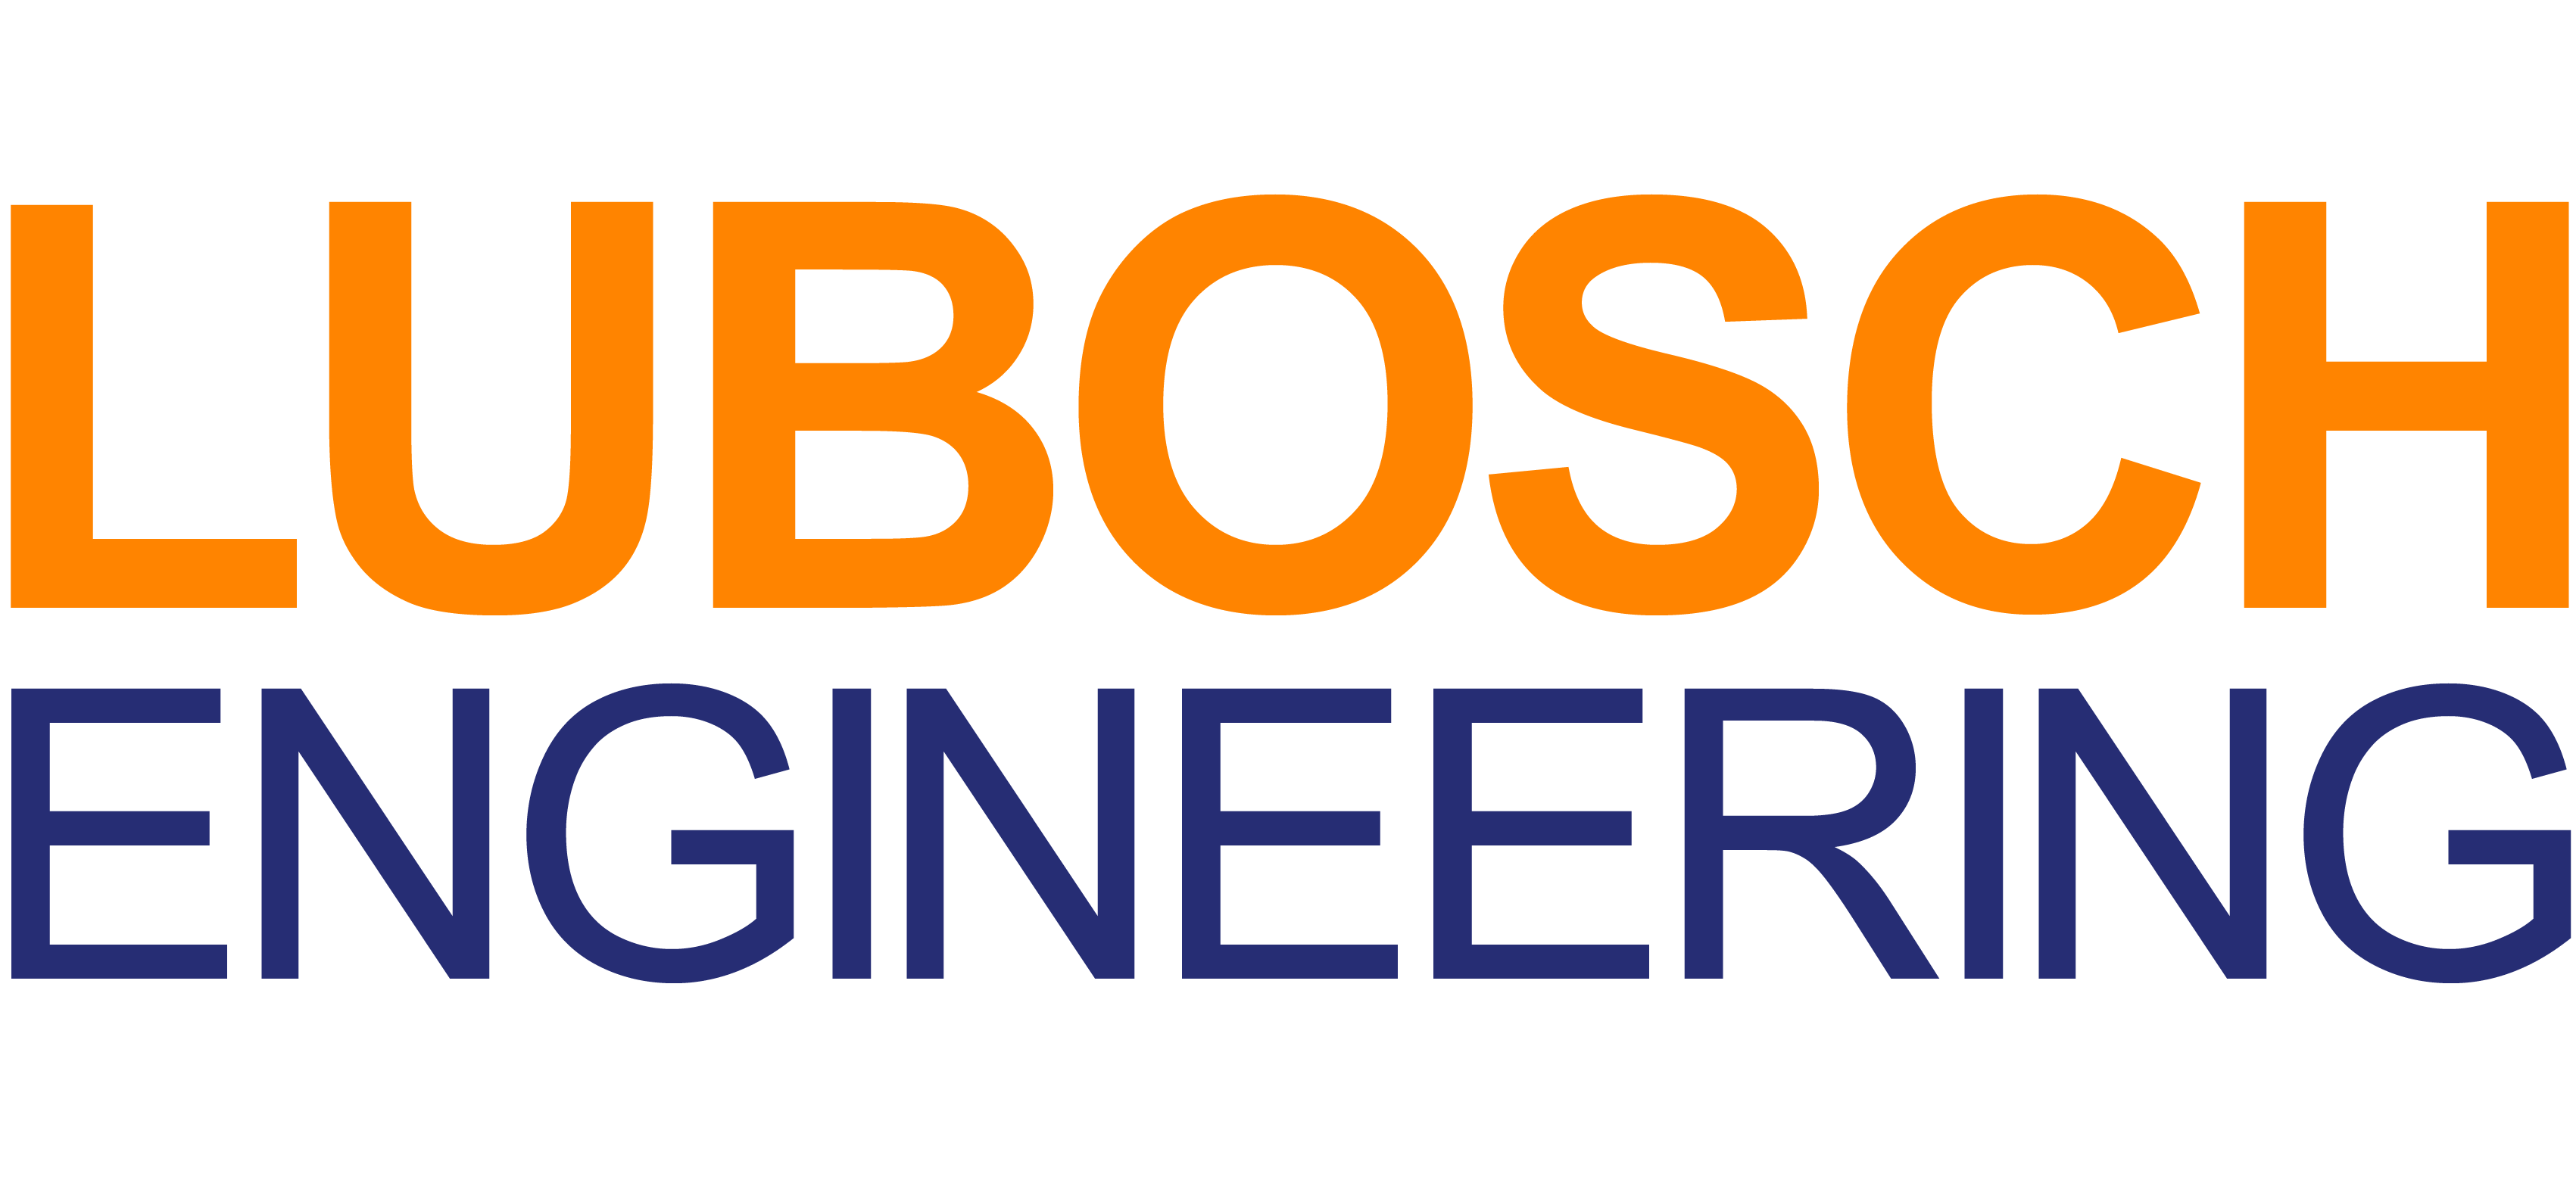 Lubosch Engineering GmbH